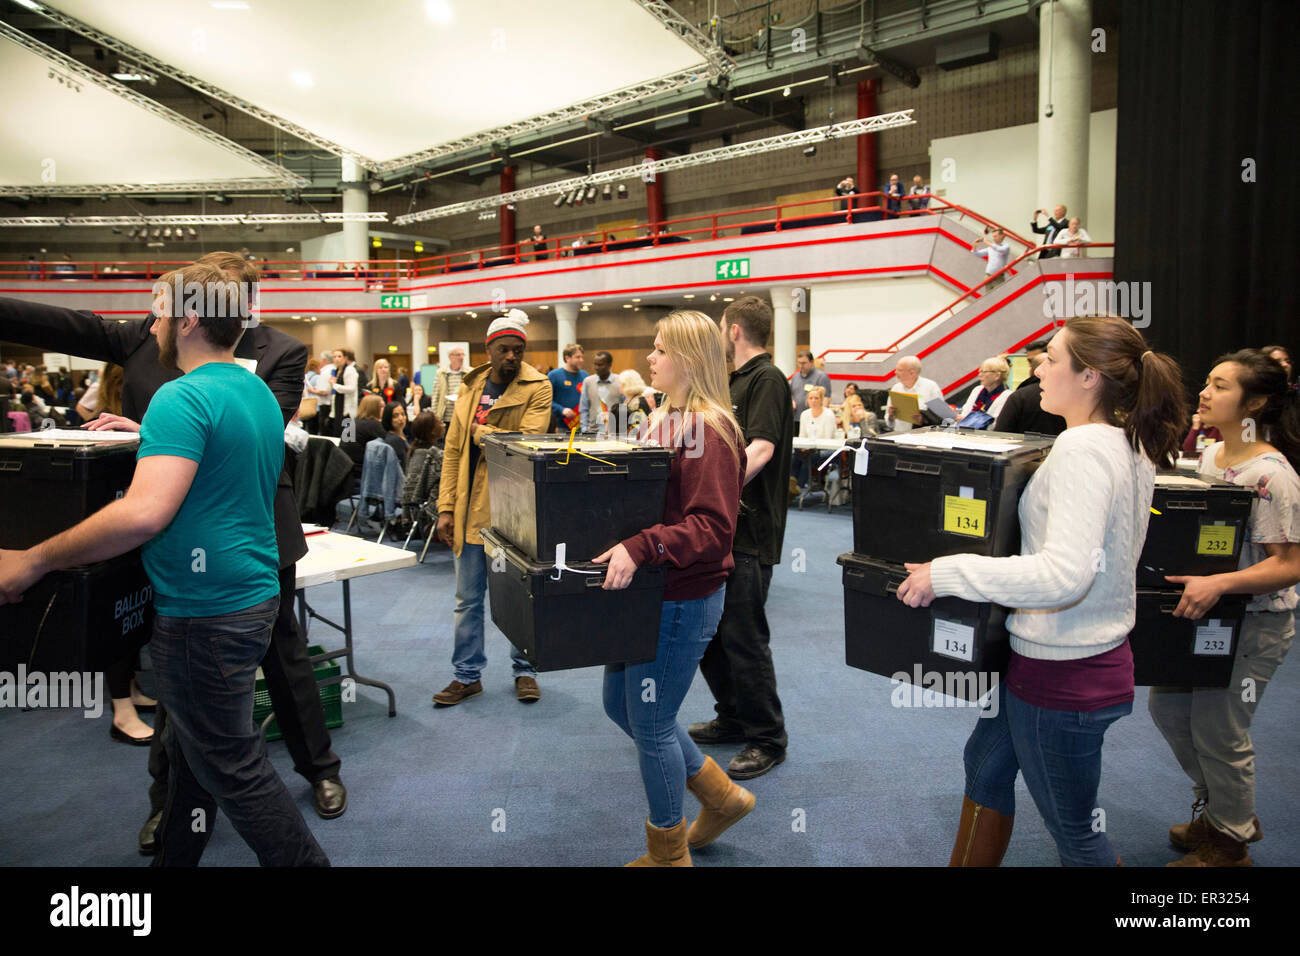 Ballot boxes arriving for counting to take place at the ICC in Birmingham for the General Election 2015 - Stock Image